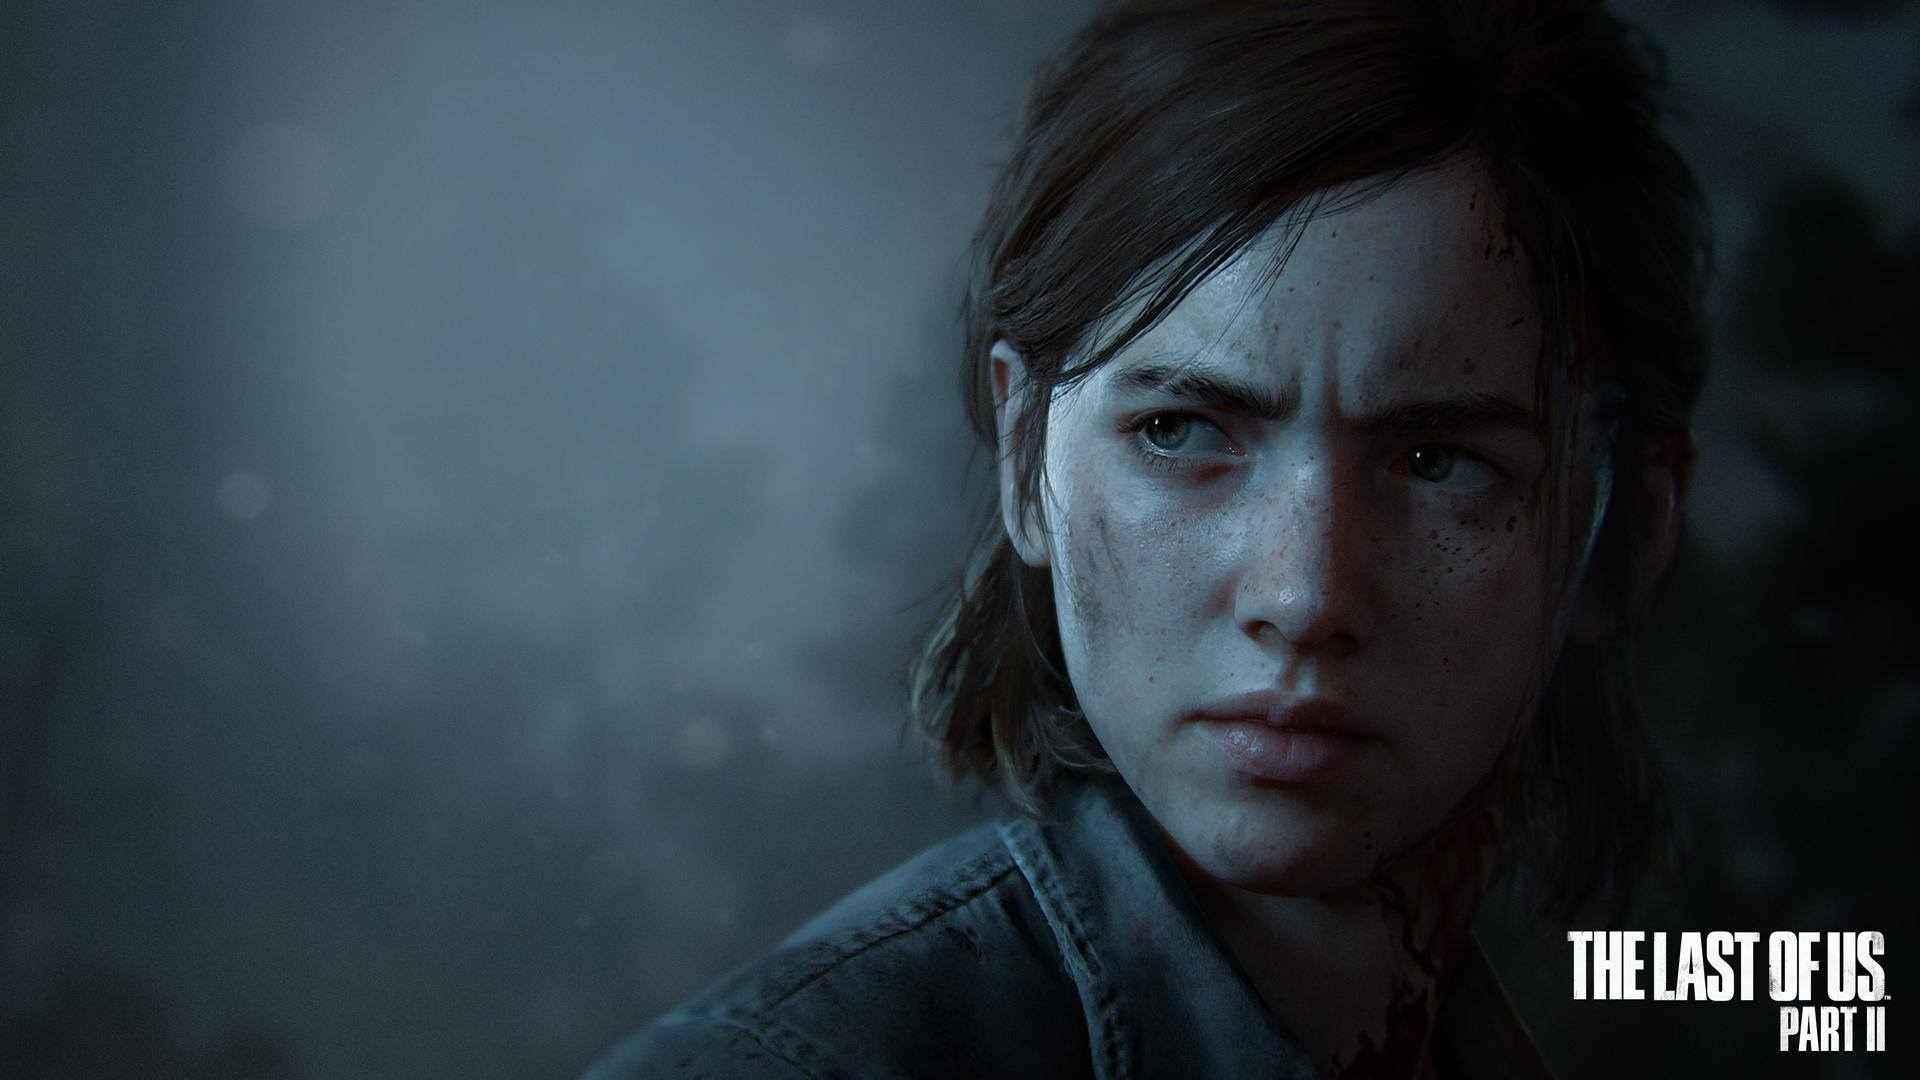 Download 1920x1080 The Last Of Us Part 2 Ellie Face Portrait 1920x1080